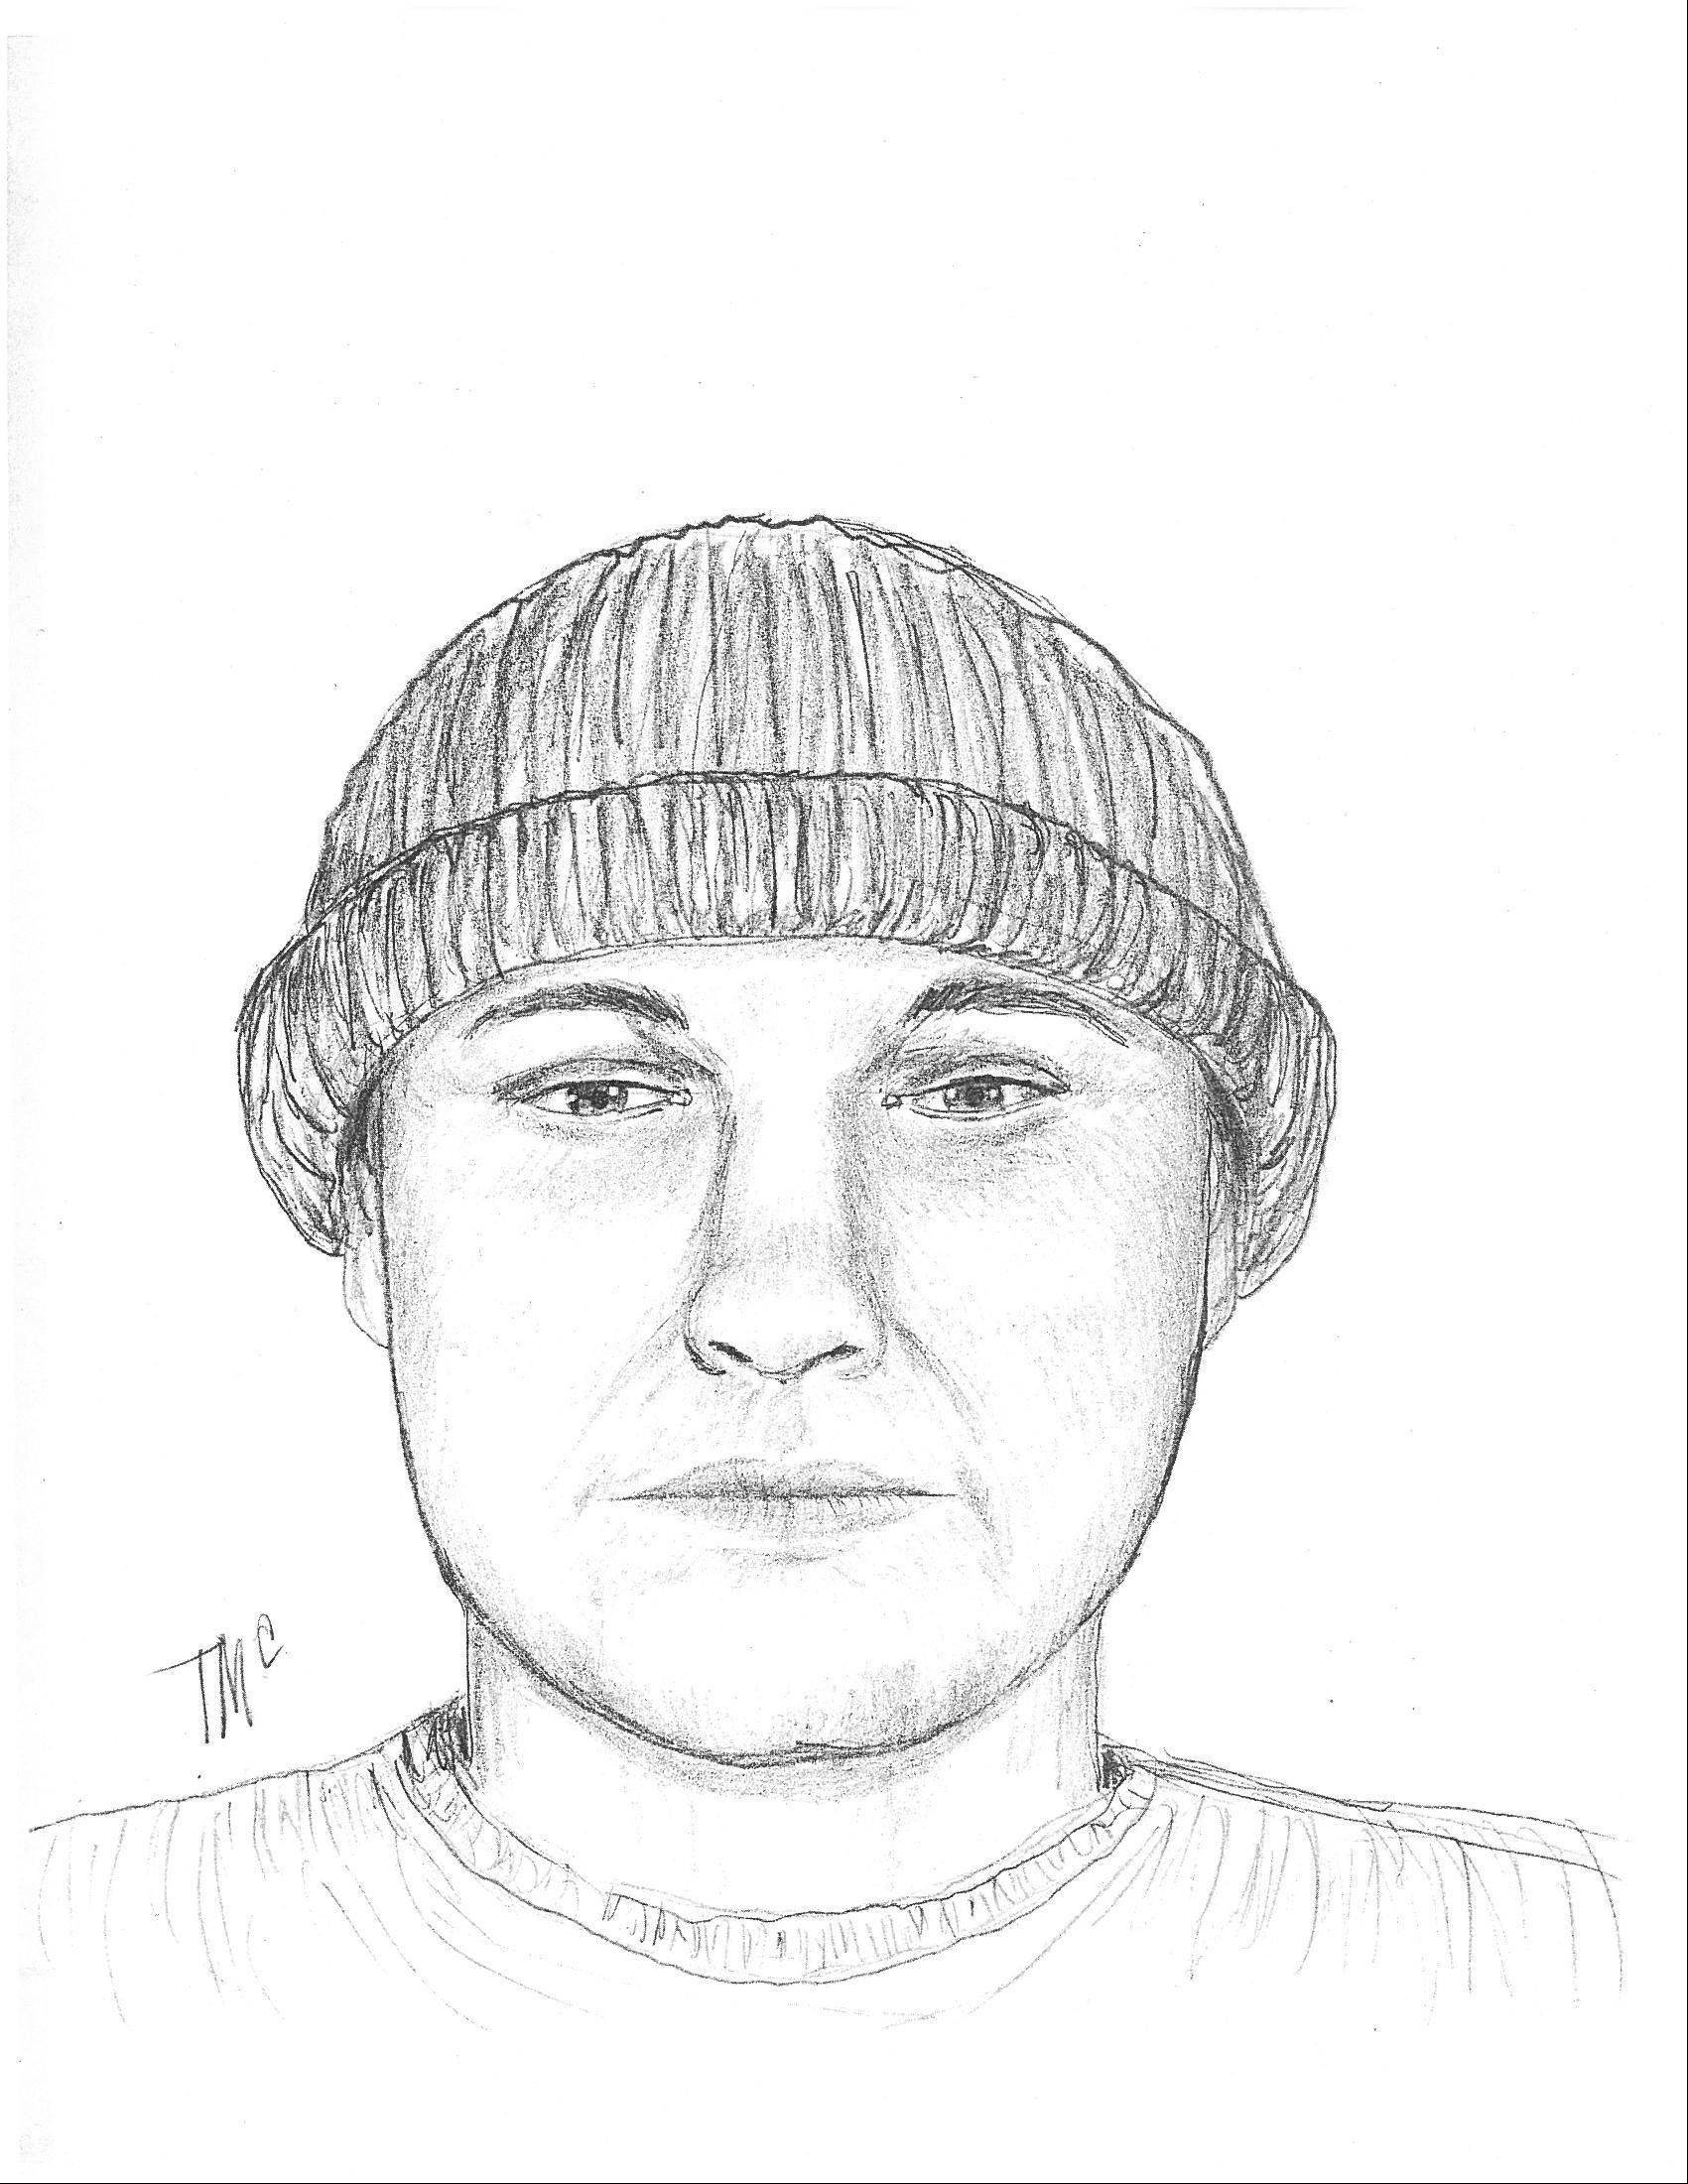 Inverness police released this sketch of a man suspected of shooting a village resident during a break-in last month.